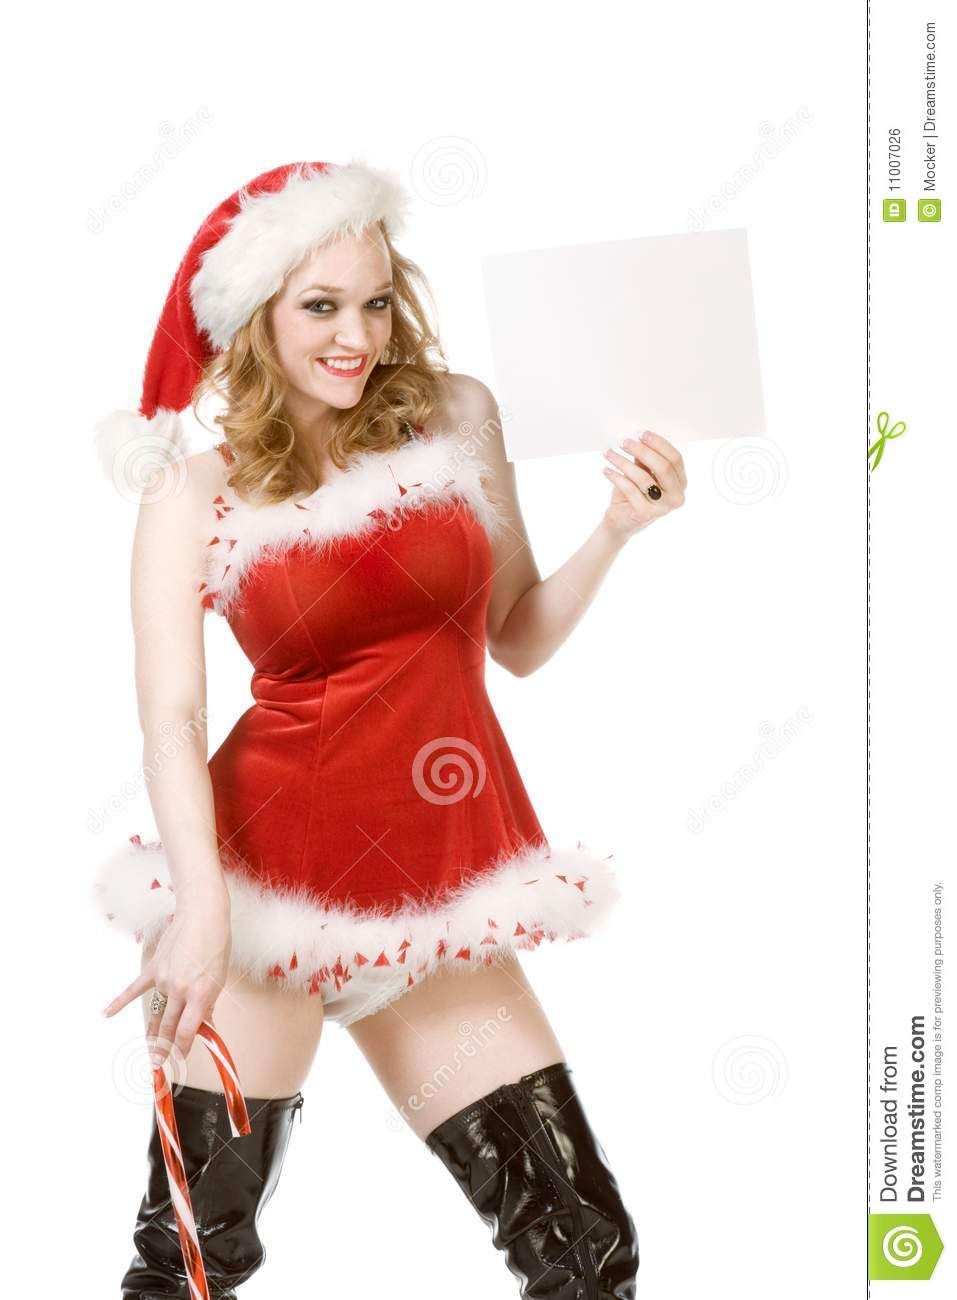 [Image: template-pin-up-mrs-santa-claus-candy-cane-11007026.jpg]